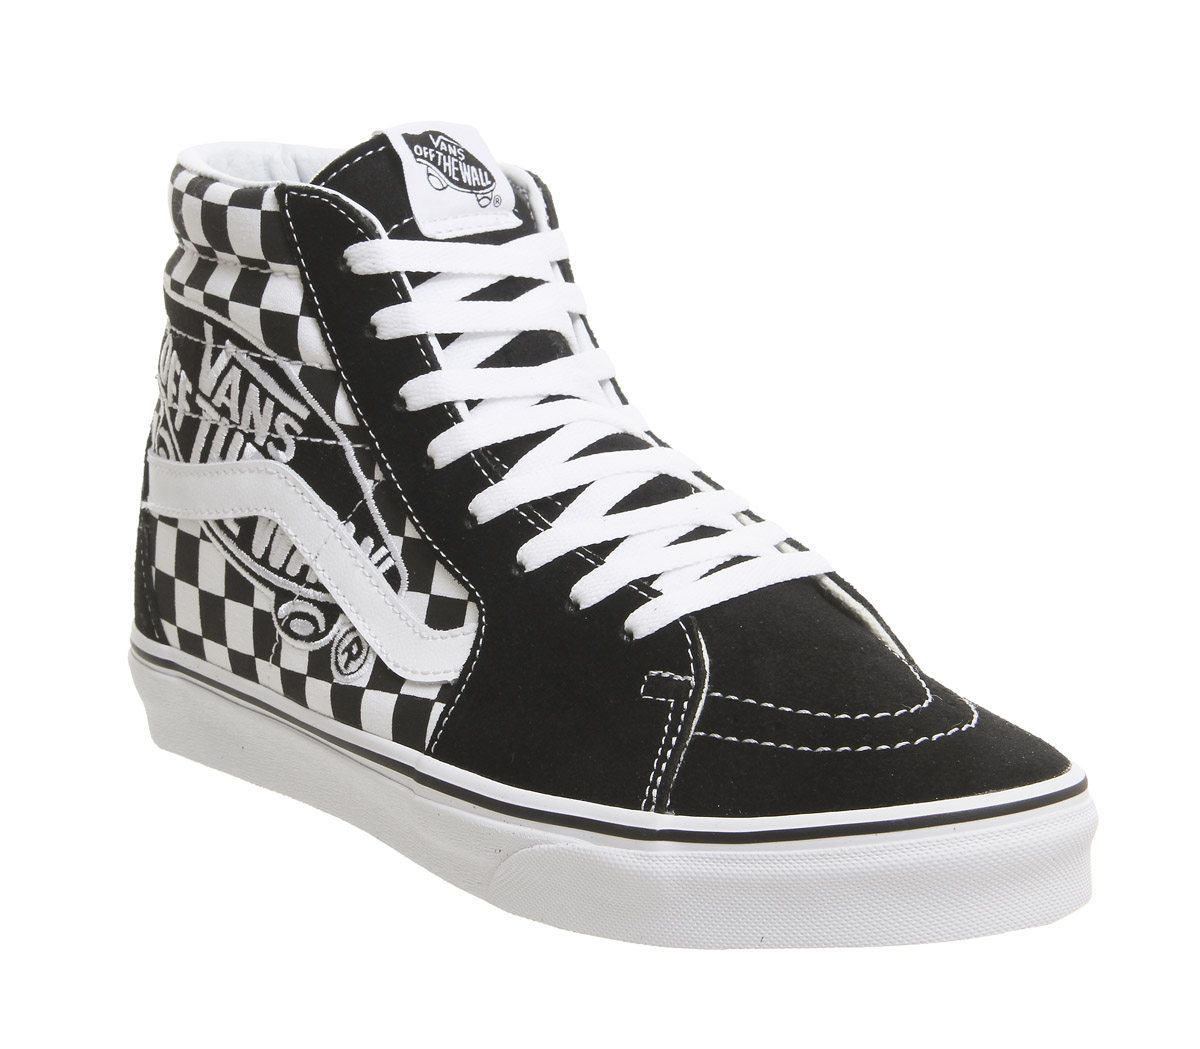 Herren Vans Sk8 Weiß Hi Trainers BLACK TRUE Weiß Sk8 VANS PATCH Trainers Schuhes a137c7